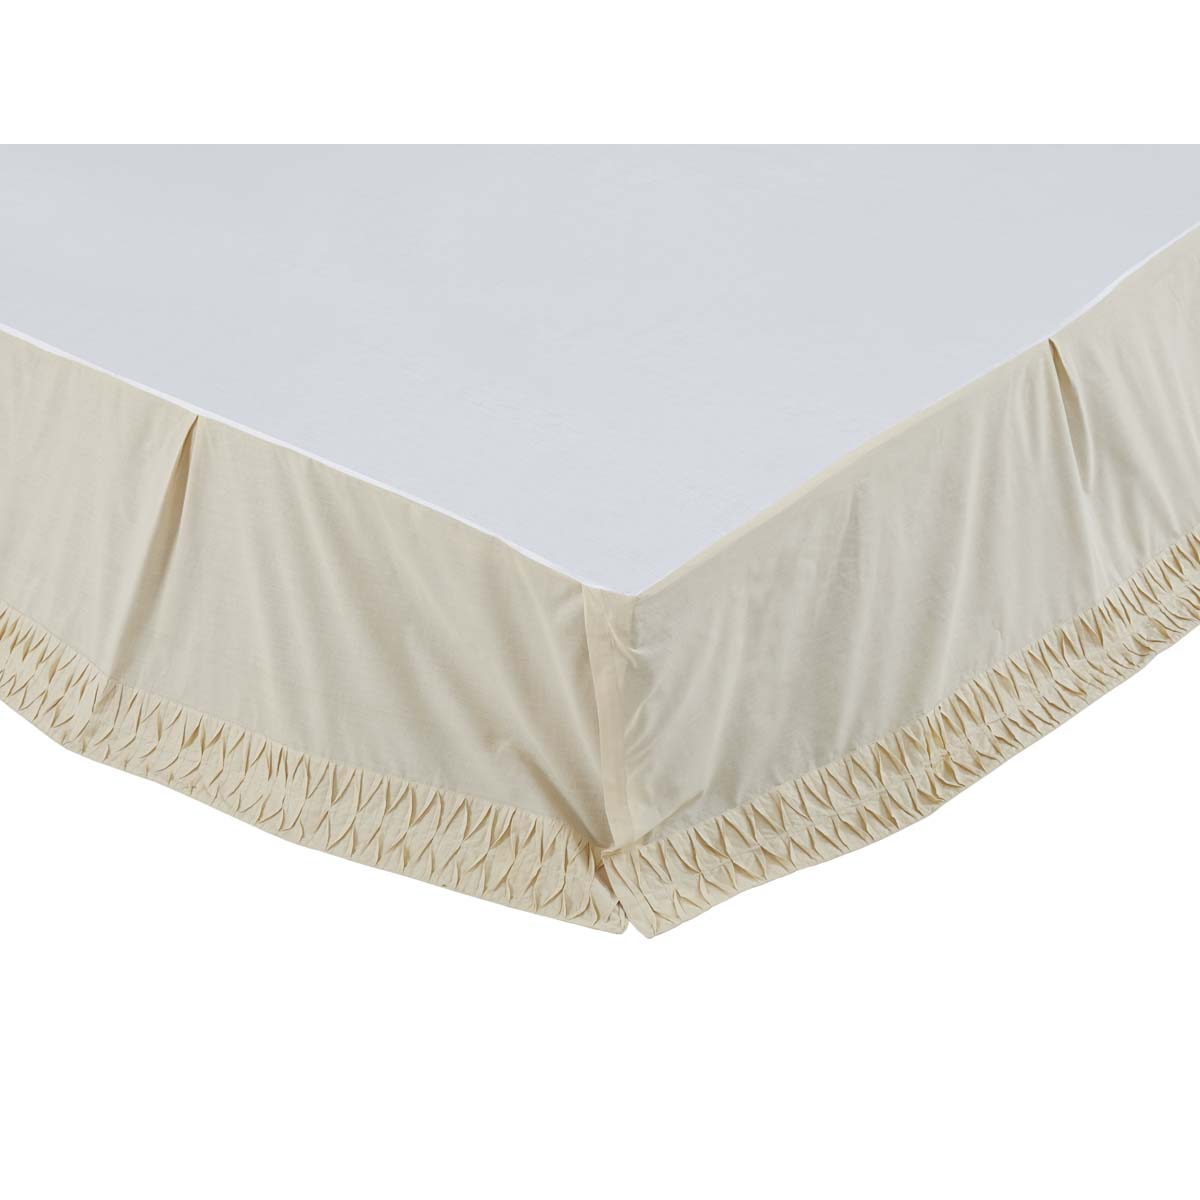 Adelia Creme Twin Bed Skirt 39x76x16